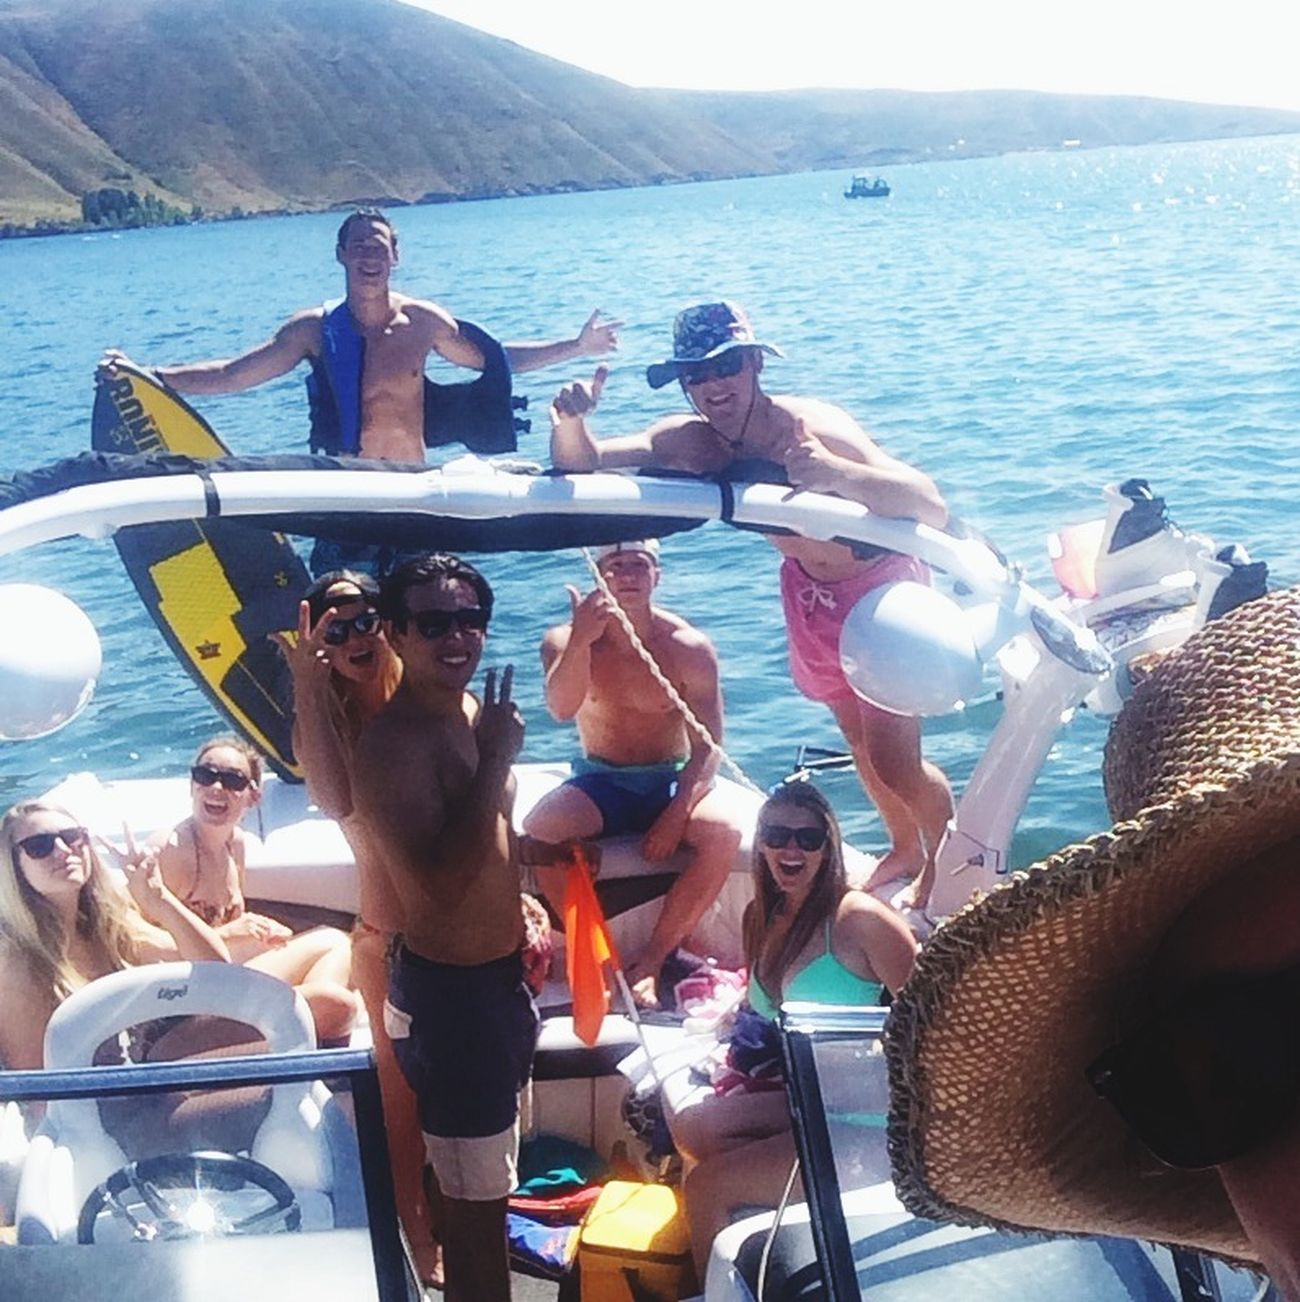 Boating Lucky Peak Friends Summer Fun